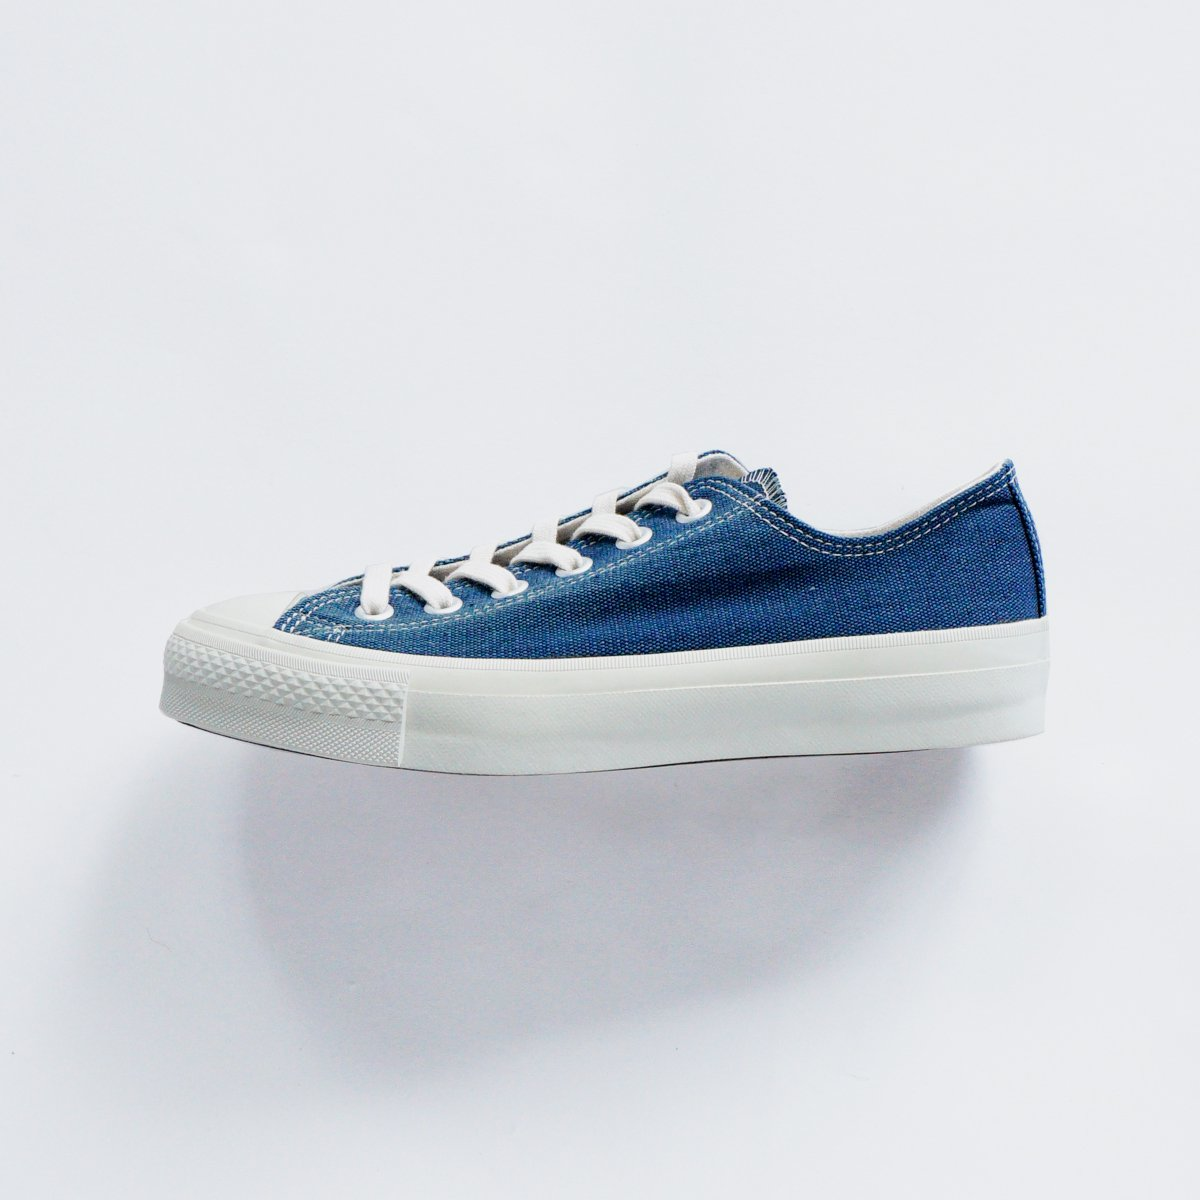 DOEK CANVAS SNEAKER 'BASKET' (NAVY)1